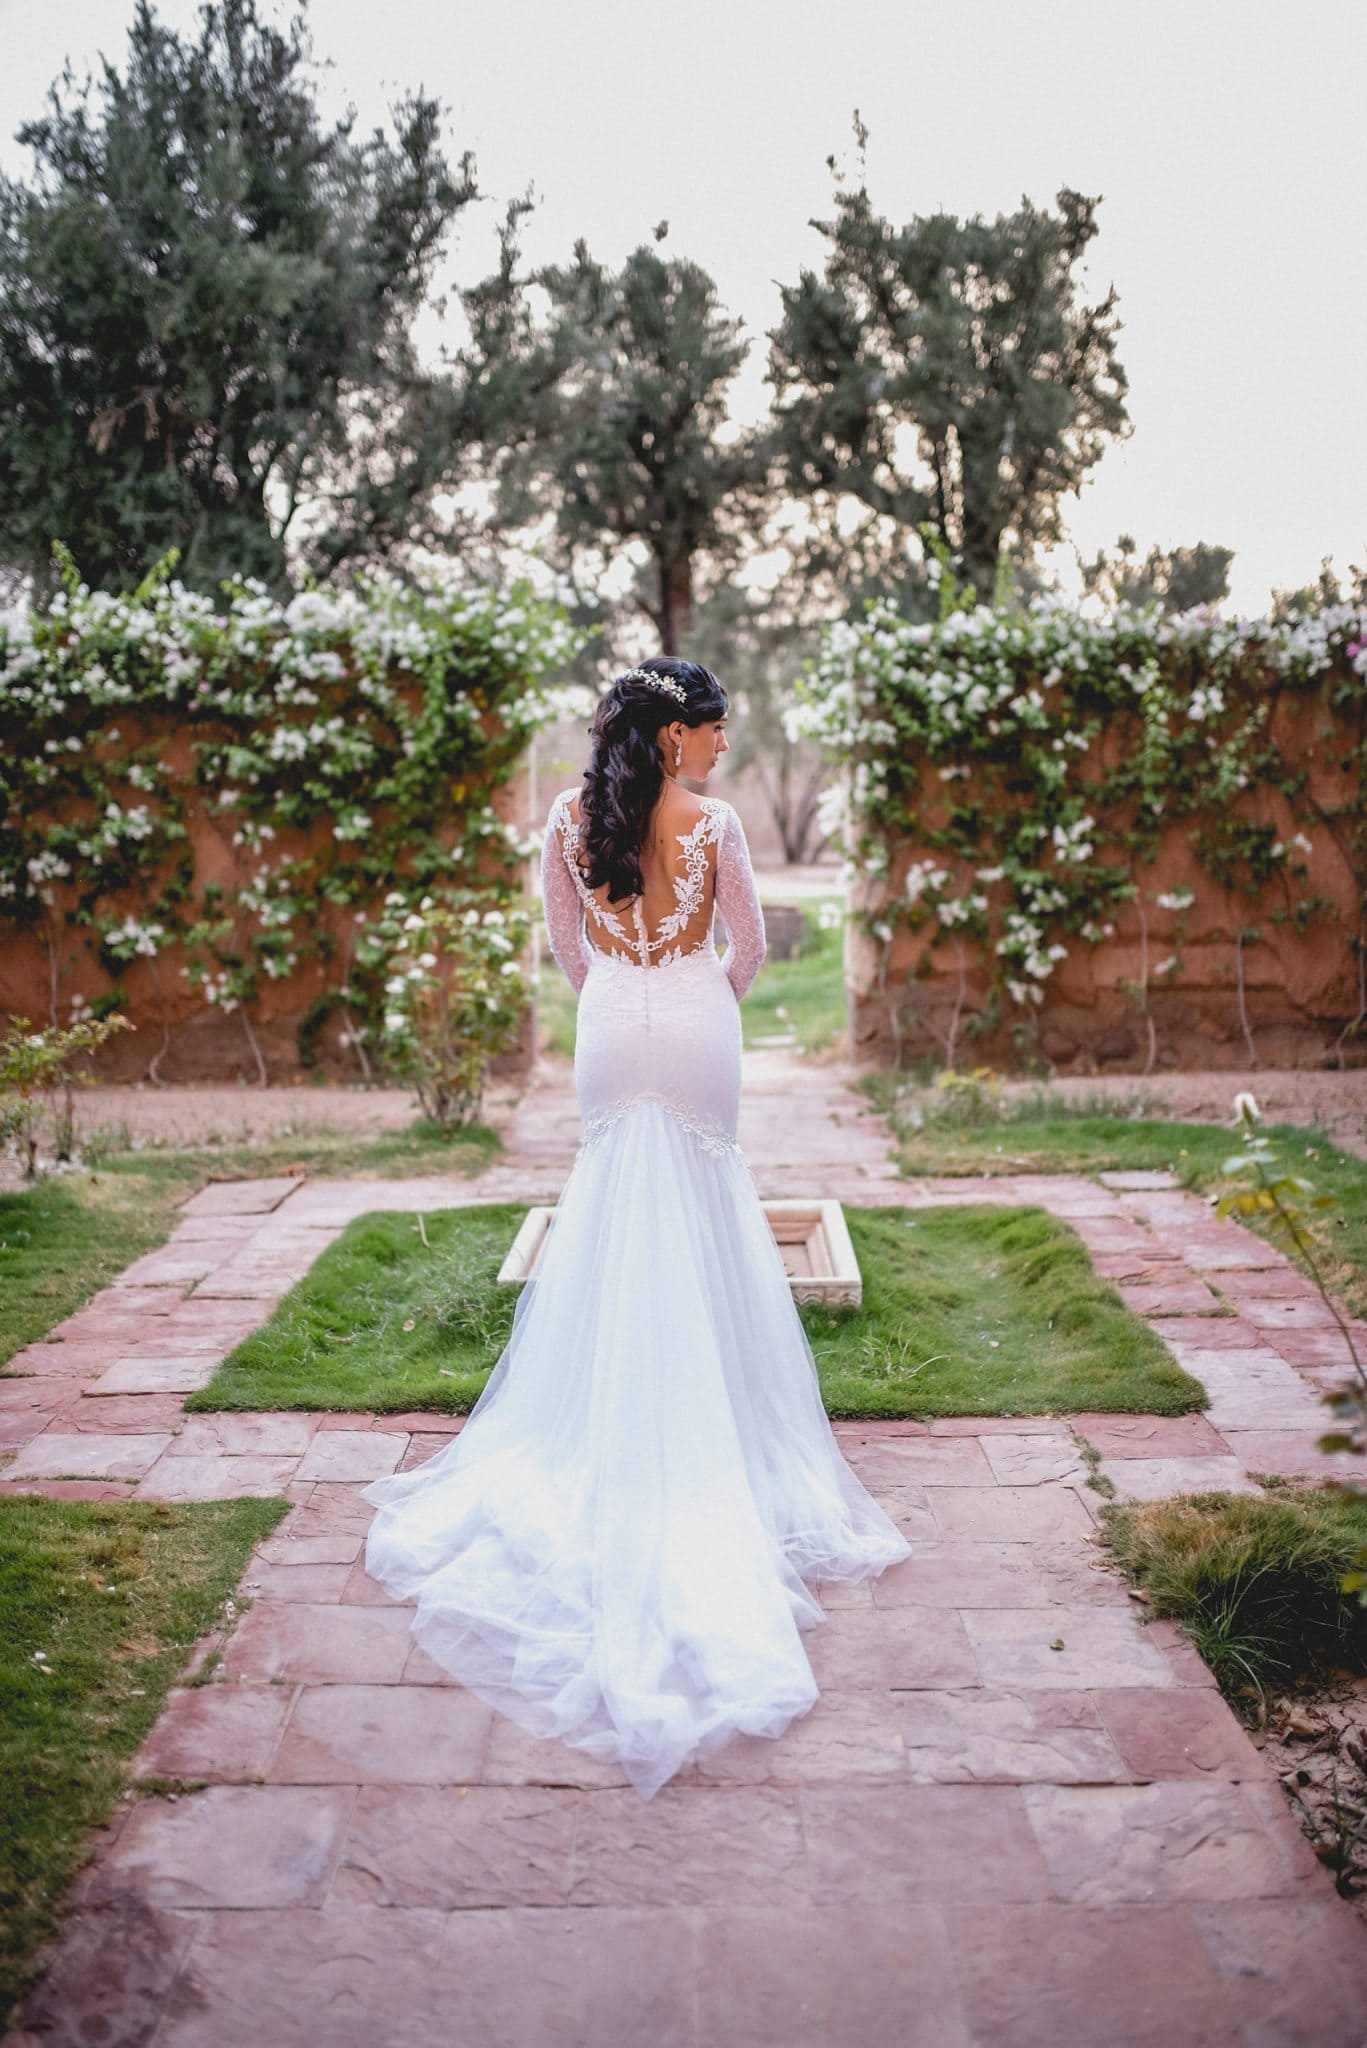 A bridal portrait. She turns to face the camera in the walled garden at Ksar Char Bagh luxury hotel in Marrakech